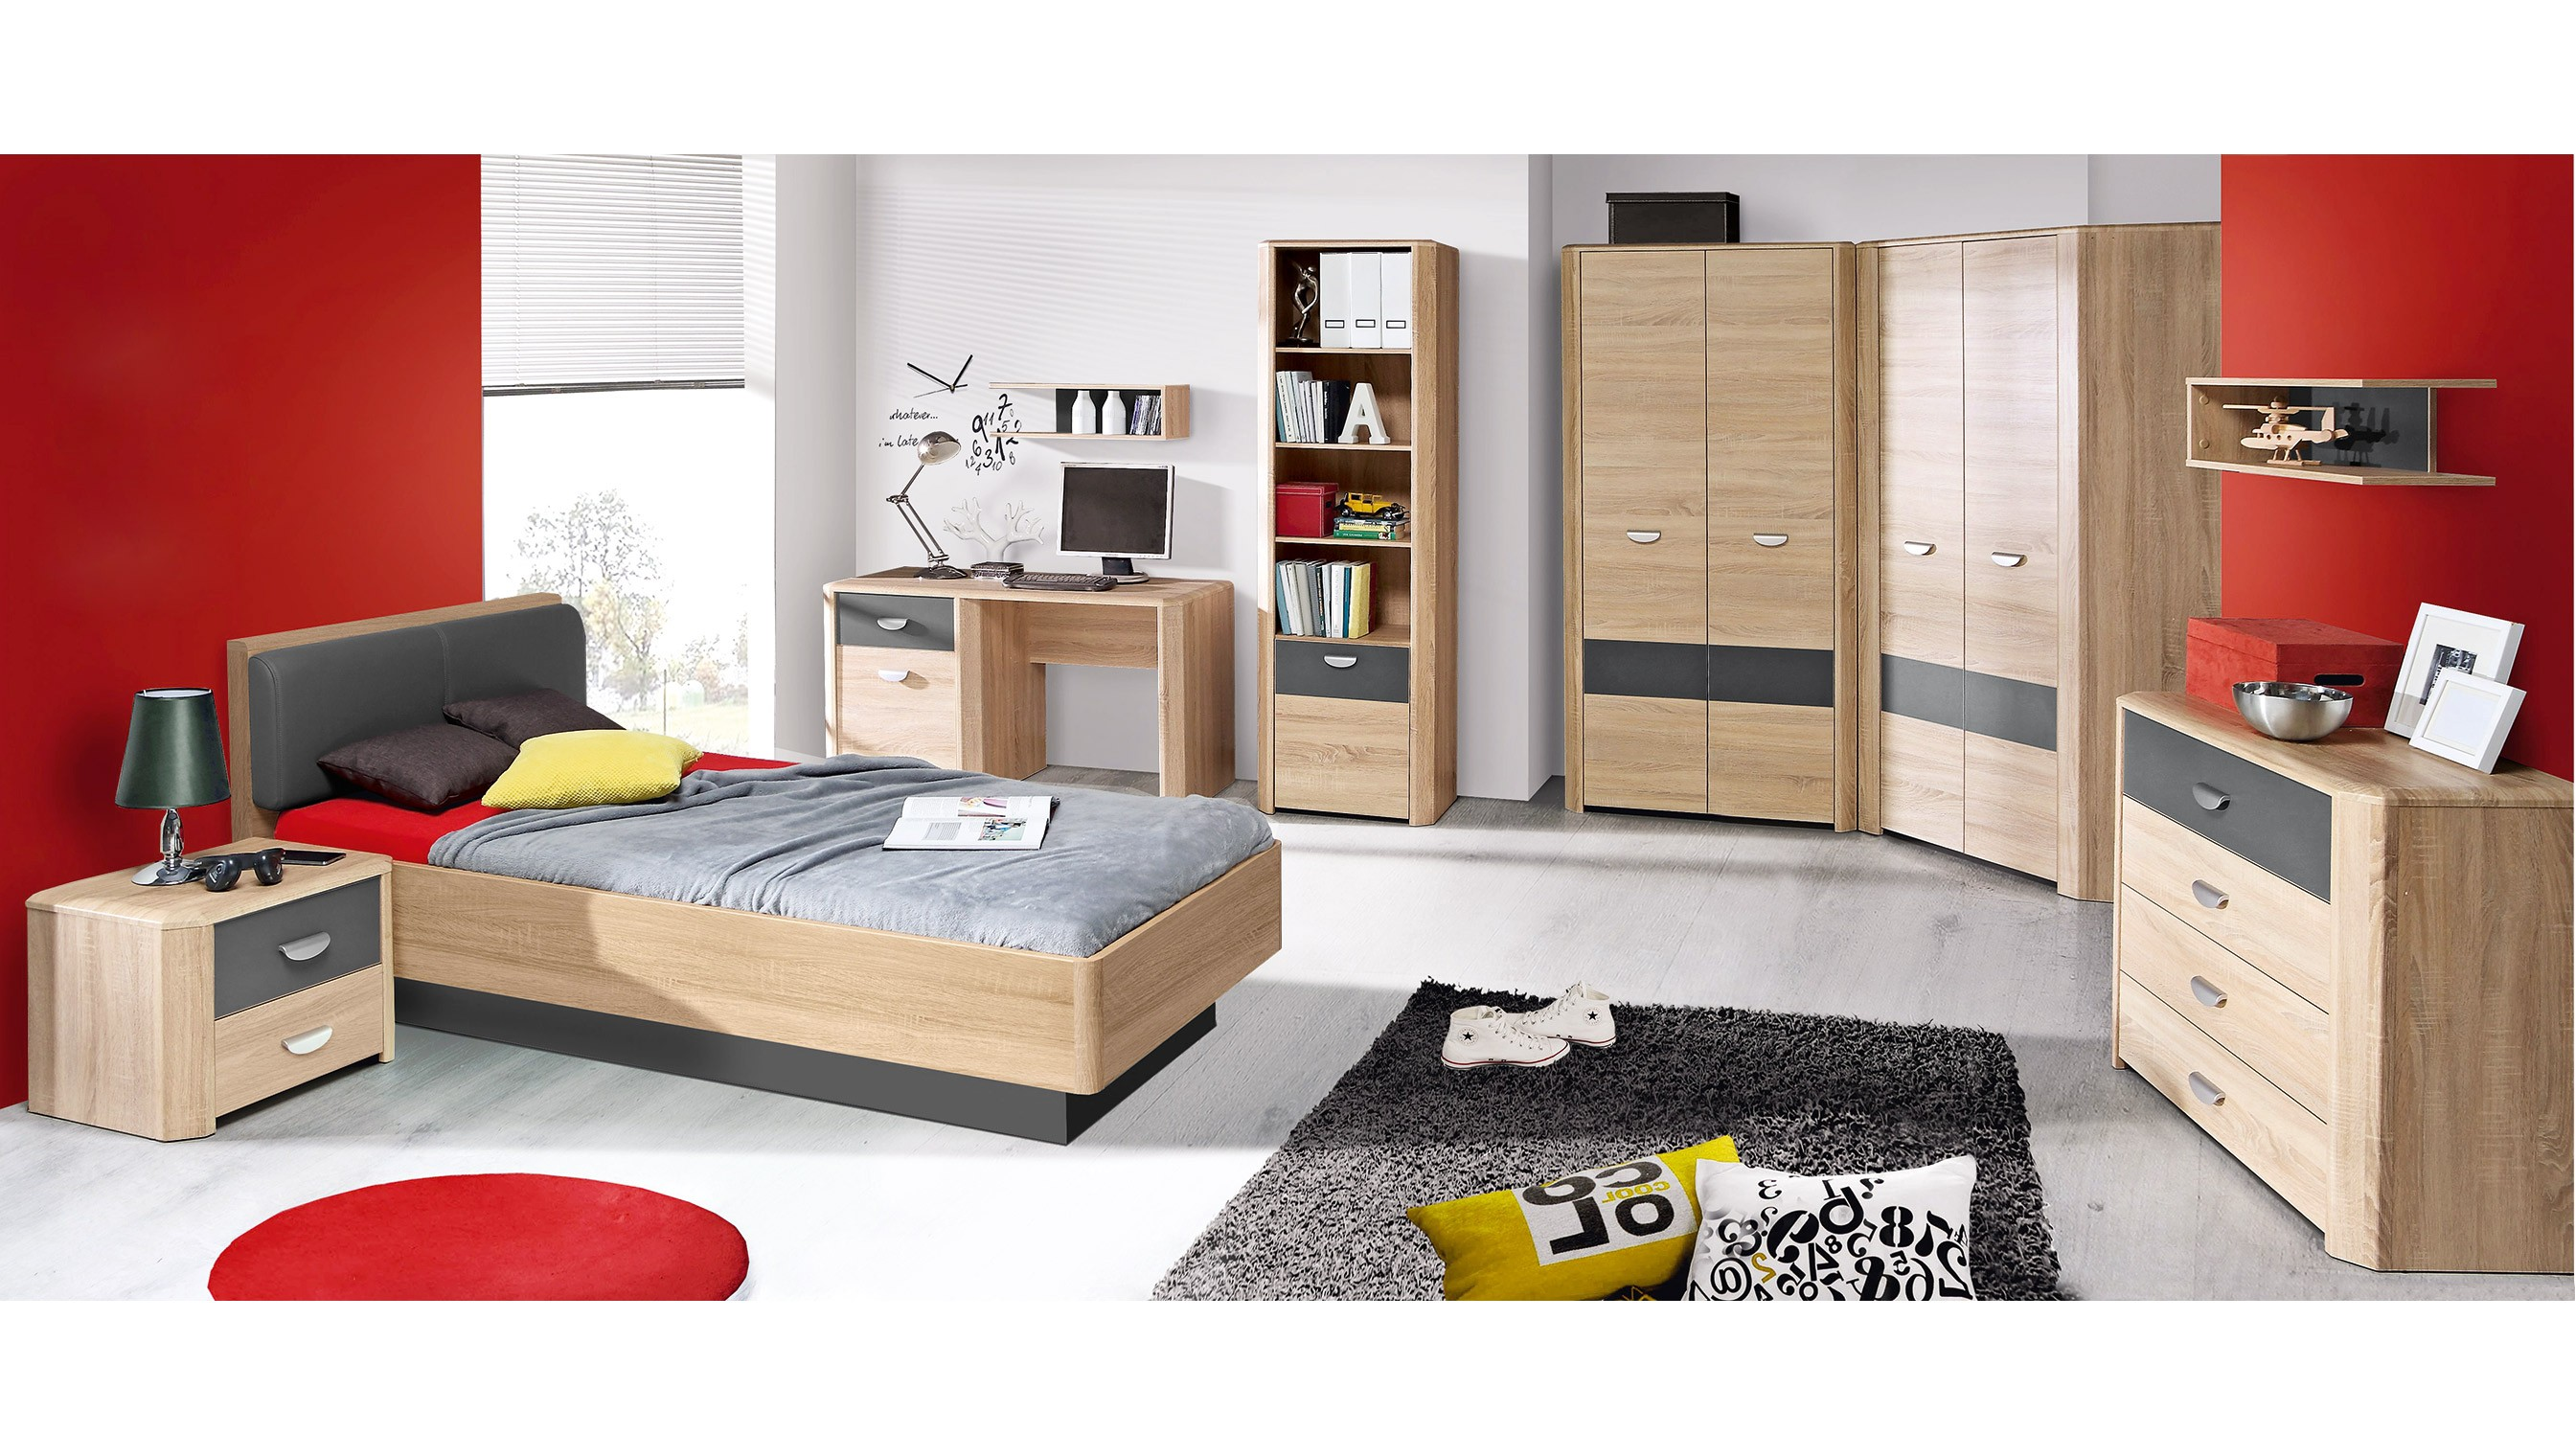 jugendzimmer yoop spilger s sparmaxx. Black Bedroom Furniture Sets. Home Design Ideas